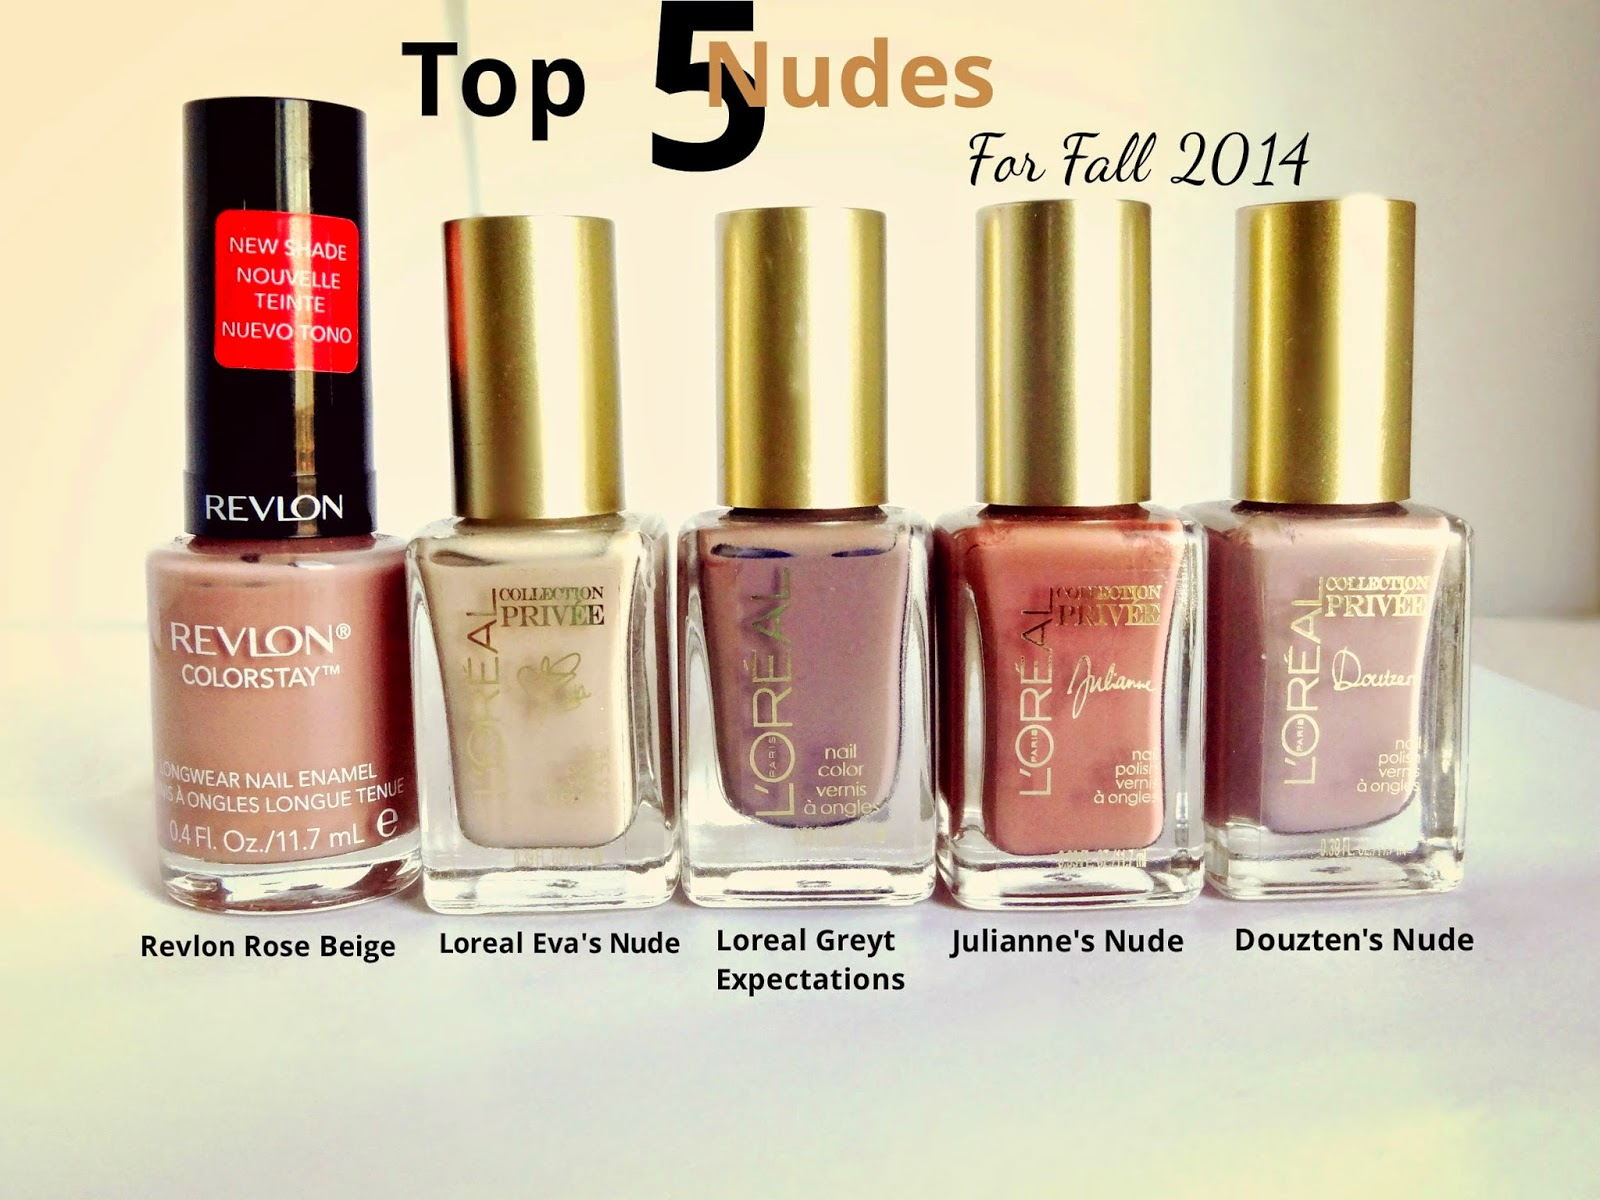 Top 5 Nude Polishes for Fall 2014